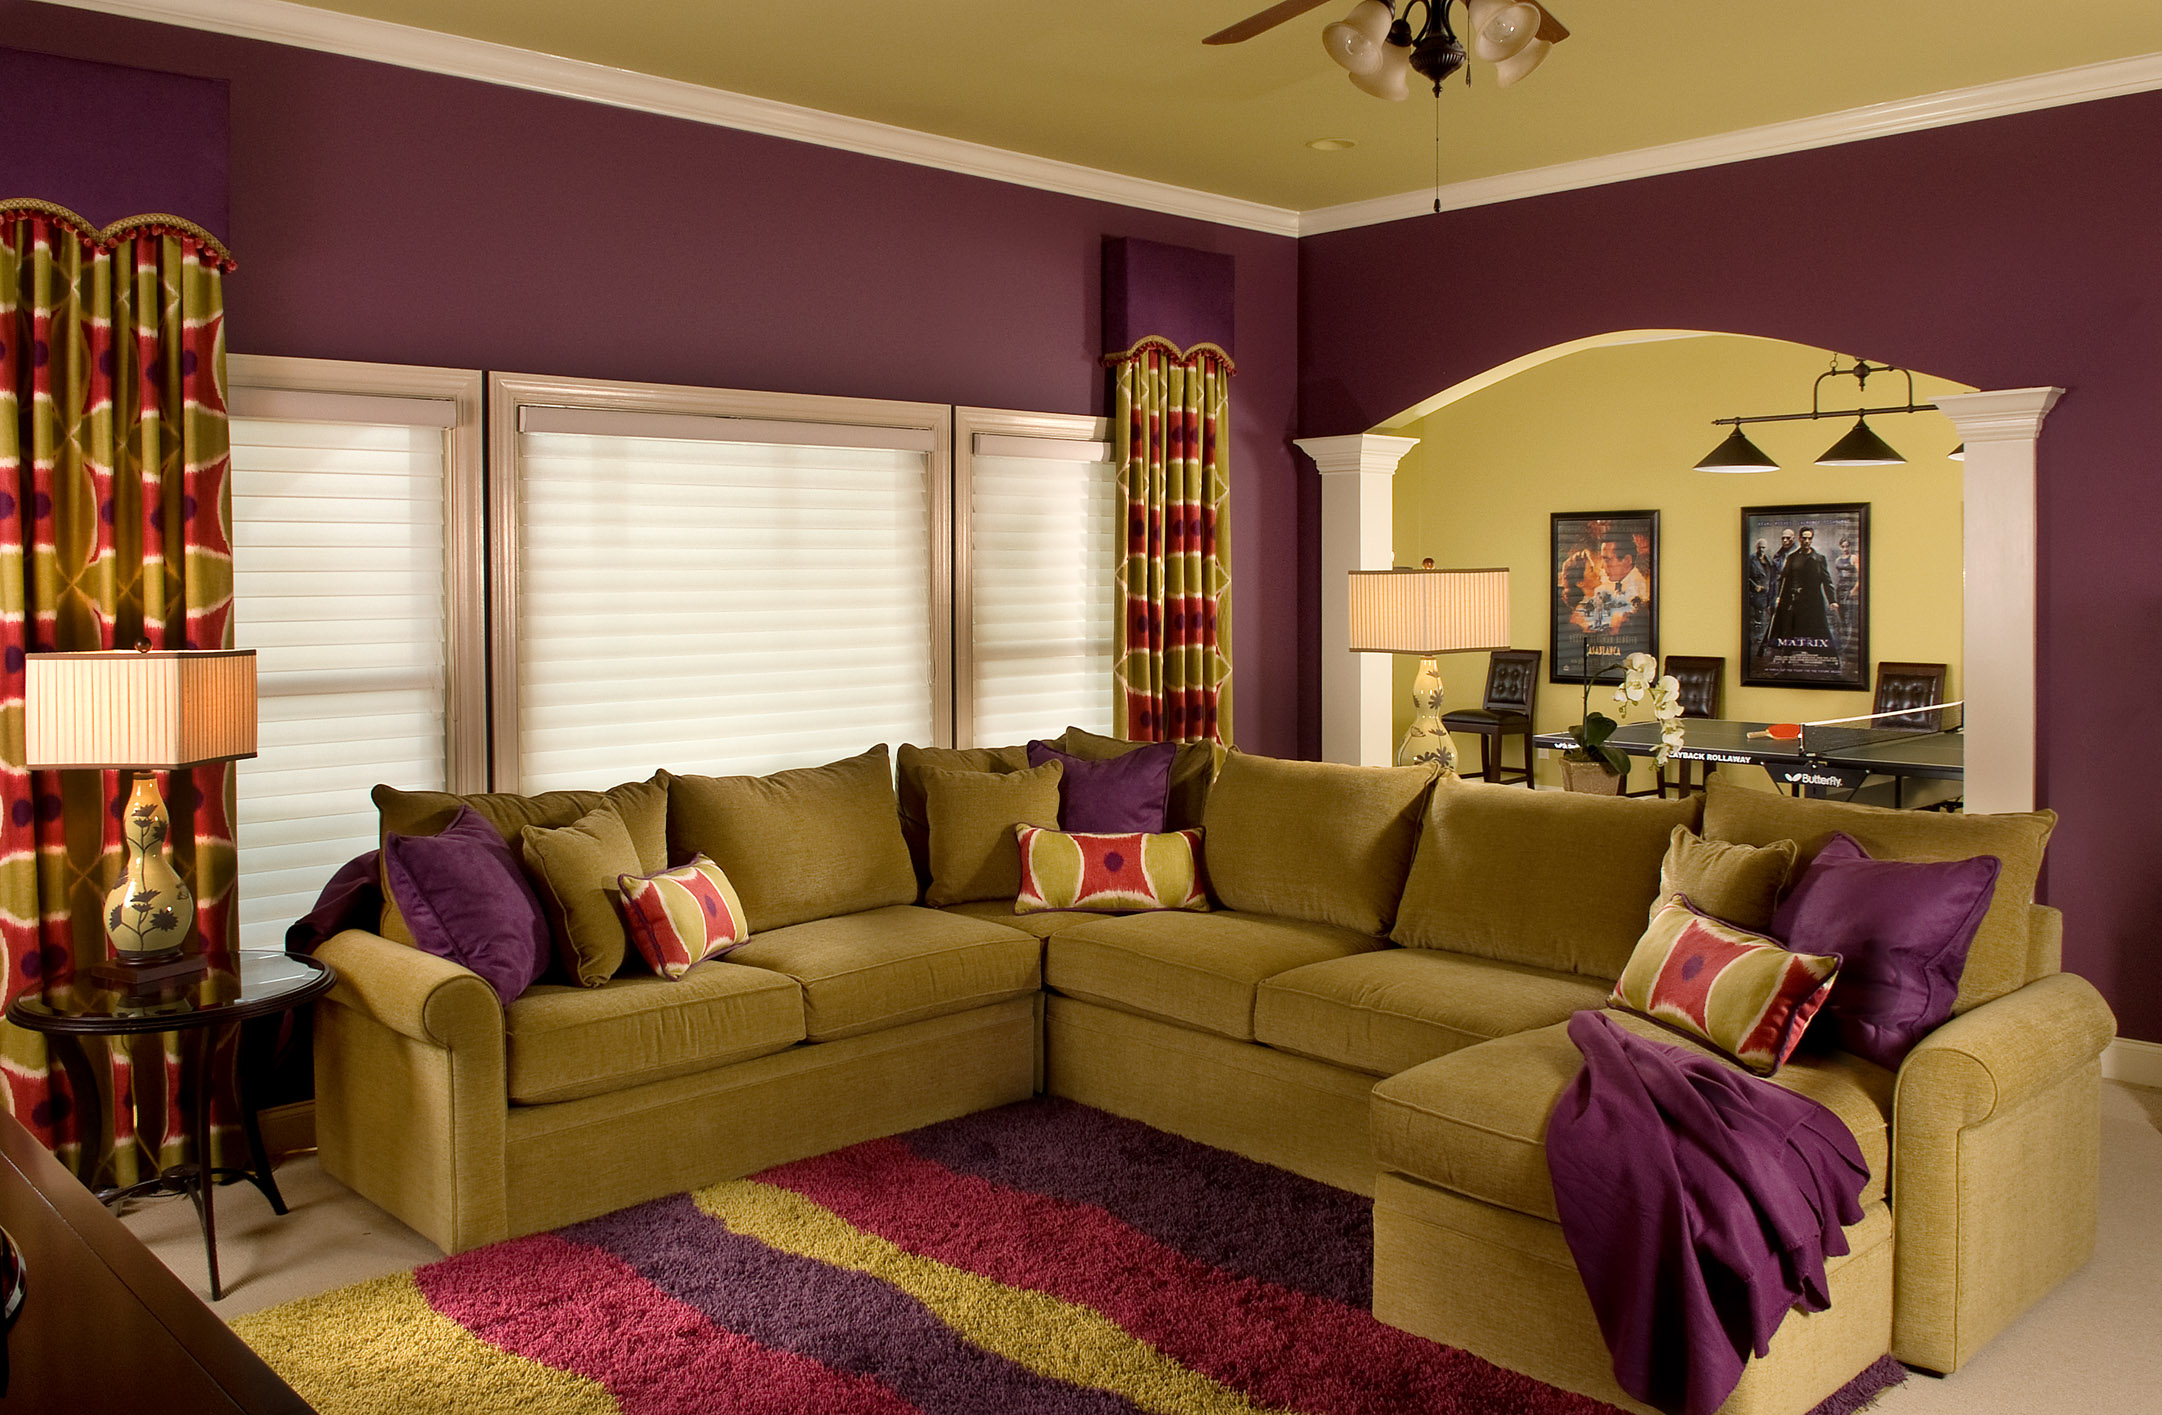 Incredible Living Room Wall Color Schemes 2162 x 1415 · 645 kB · jpeg